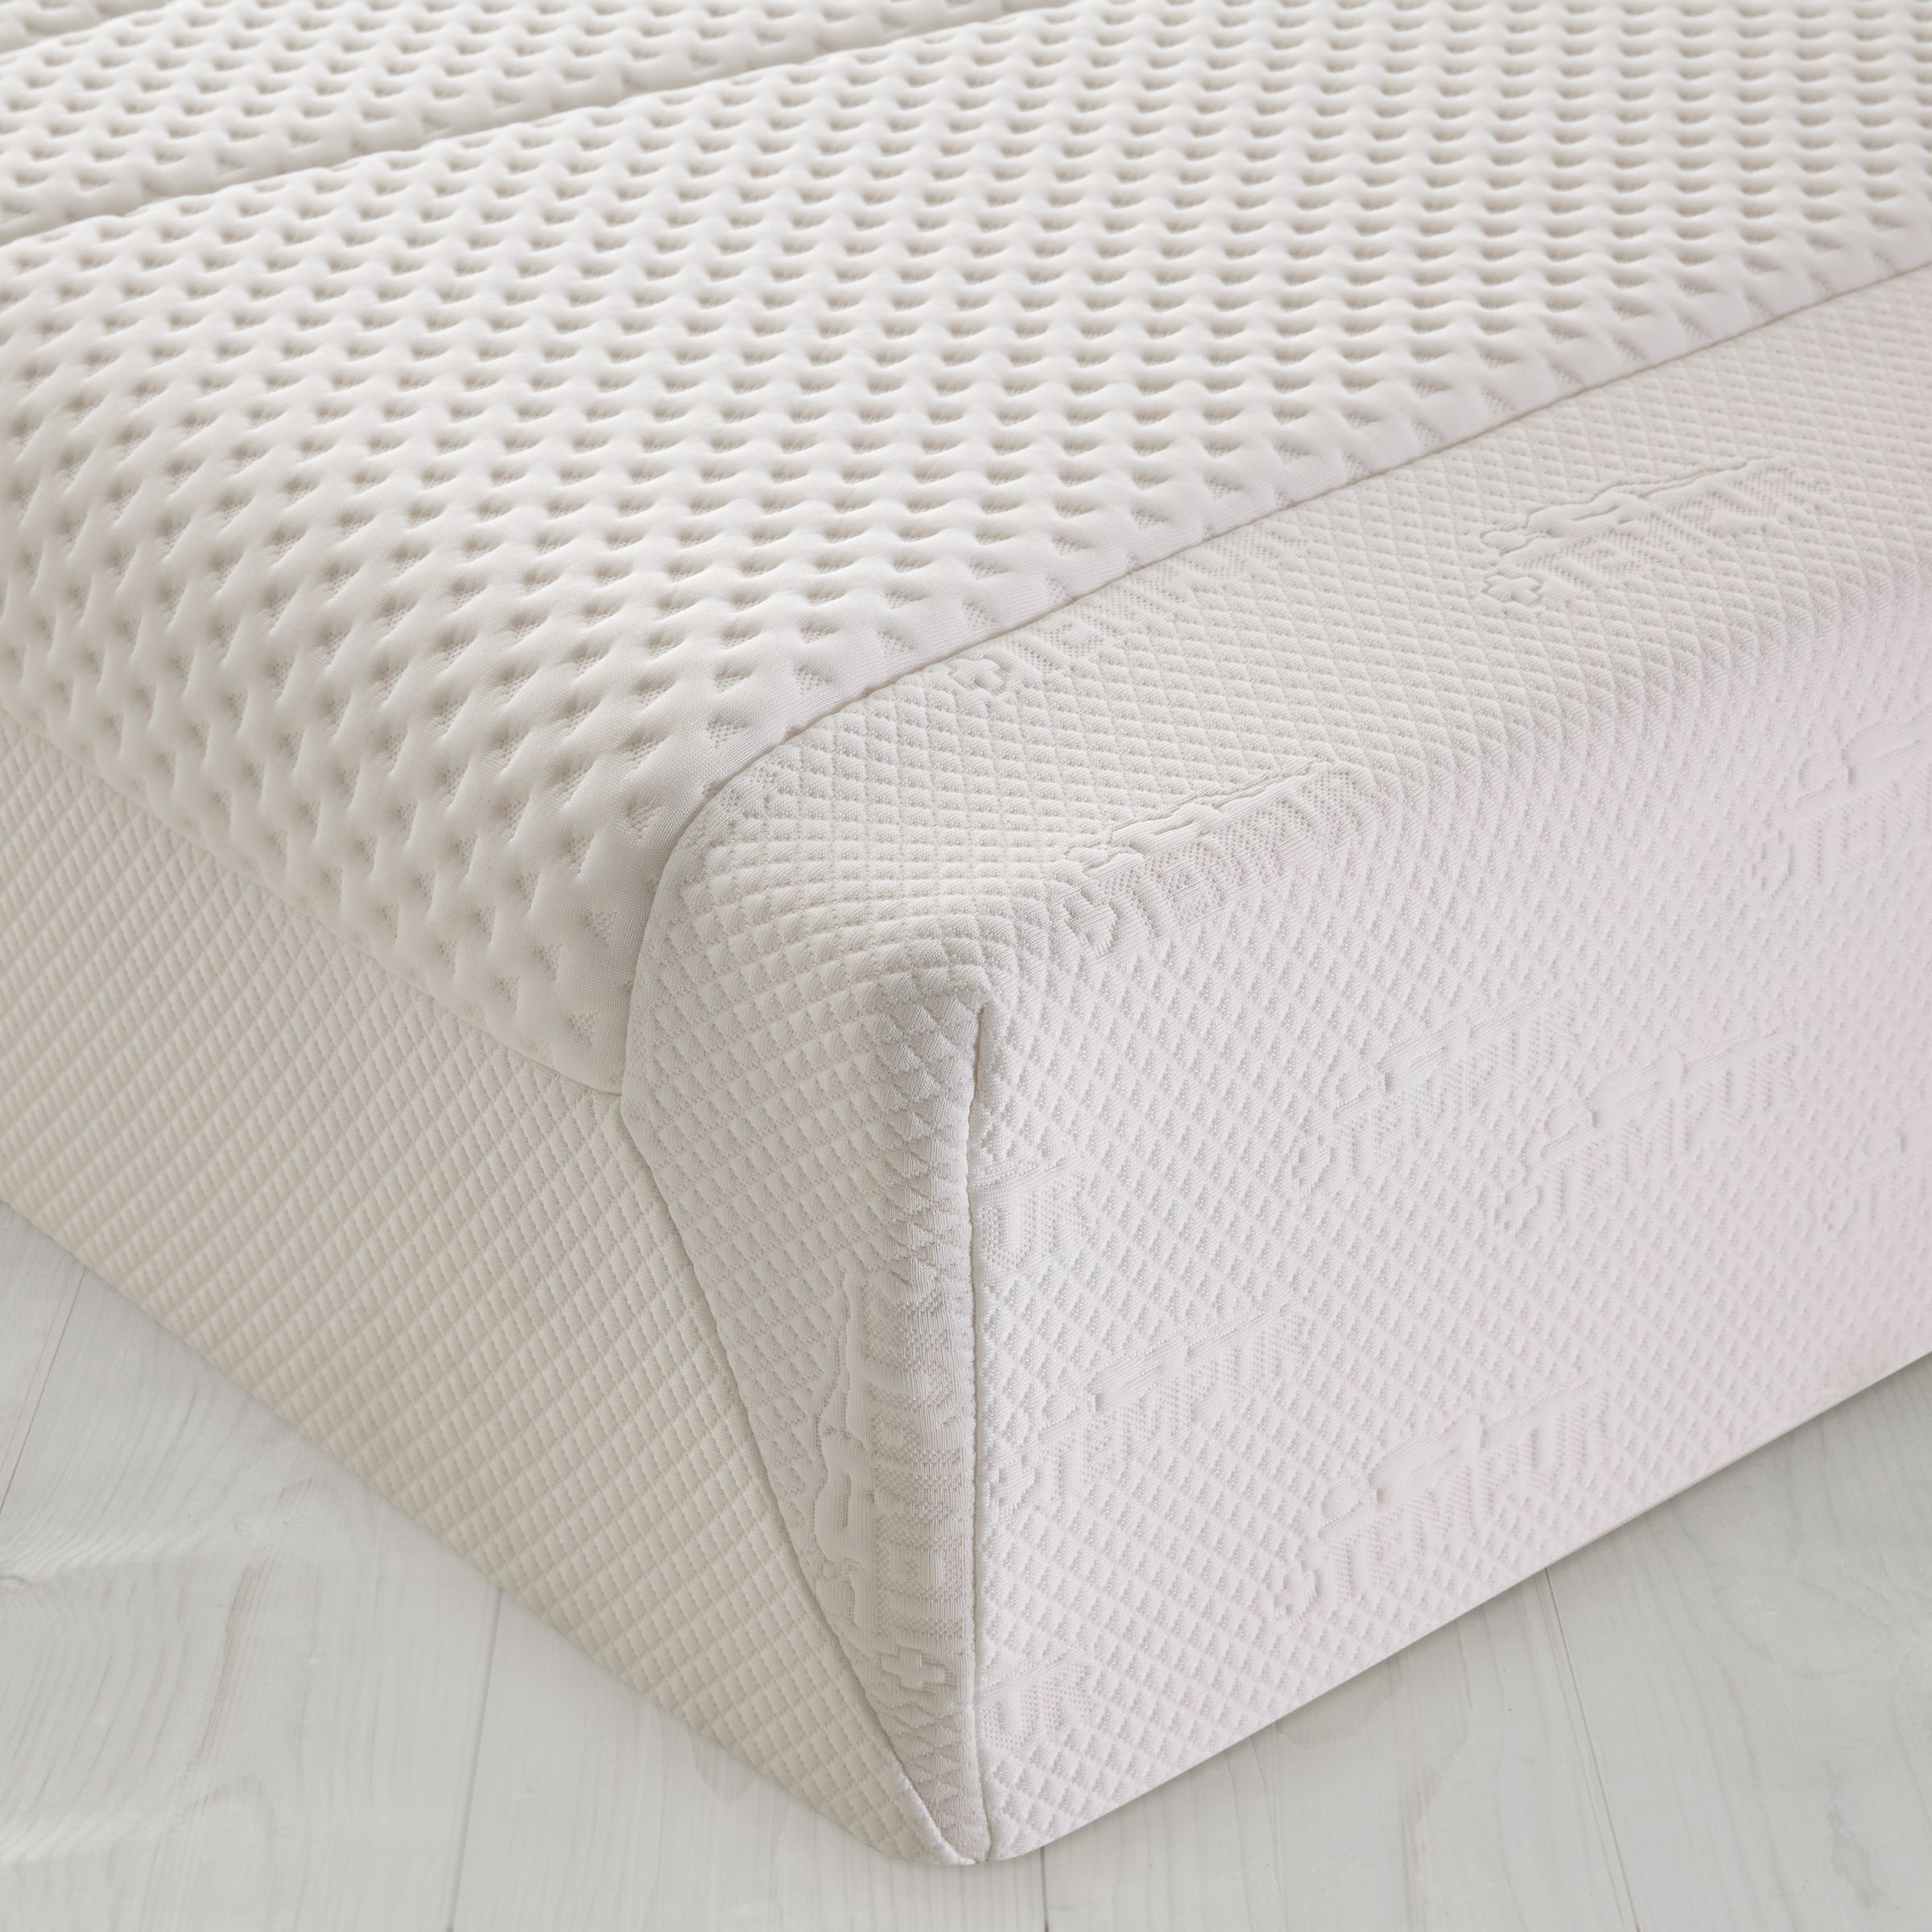 Tempur Original Deluxe 27 Mattress, Super Kingsize